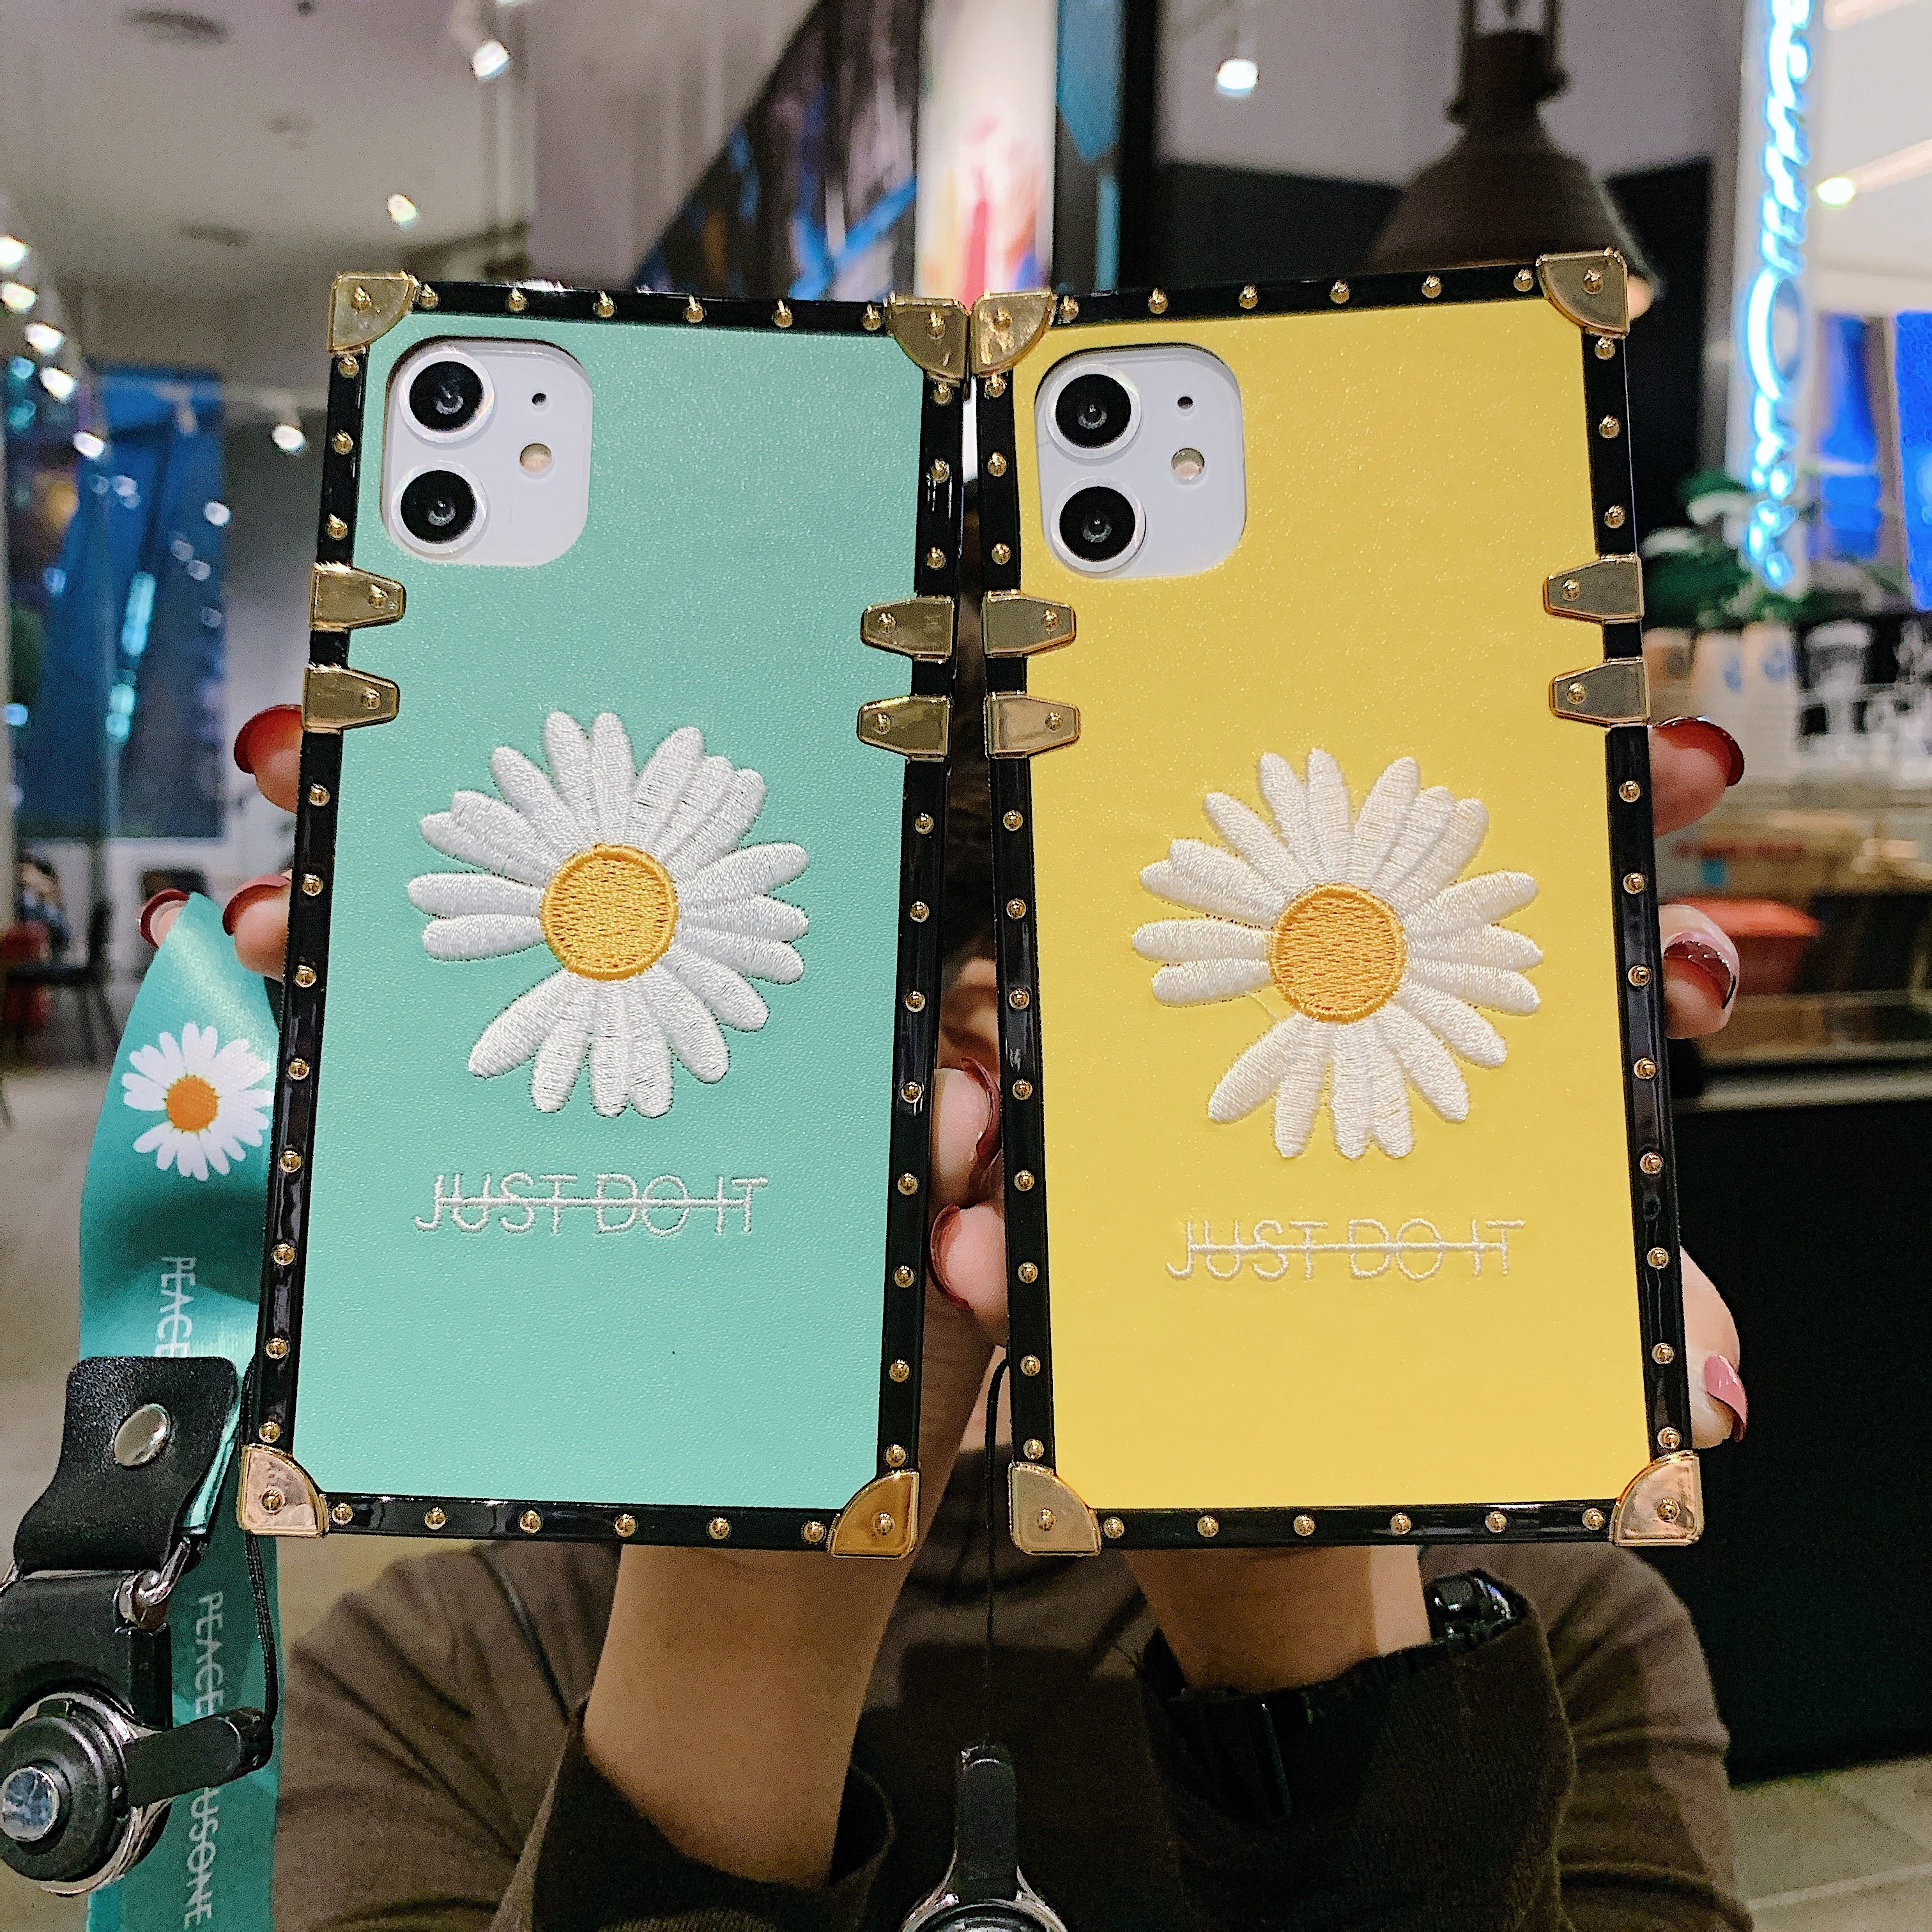 Case For Samsung S20 Ultra S20 Plus Note10 + S10 Plus S10e Note 9 Note8 S9 S8 Cover Square Embroidery Floral Daisy Coque + Strap